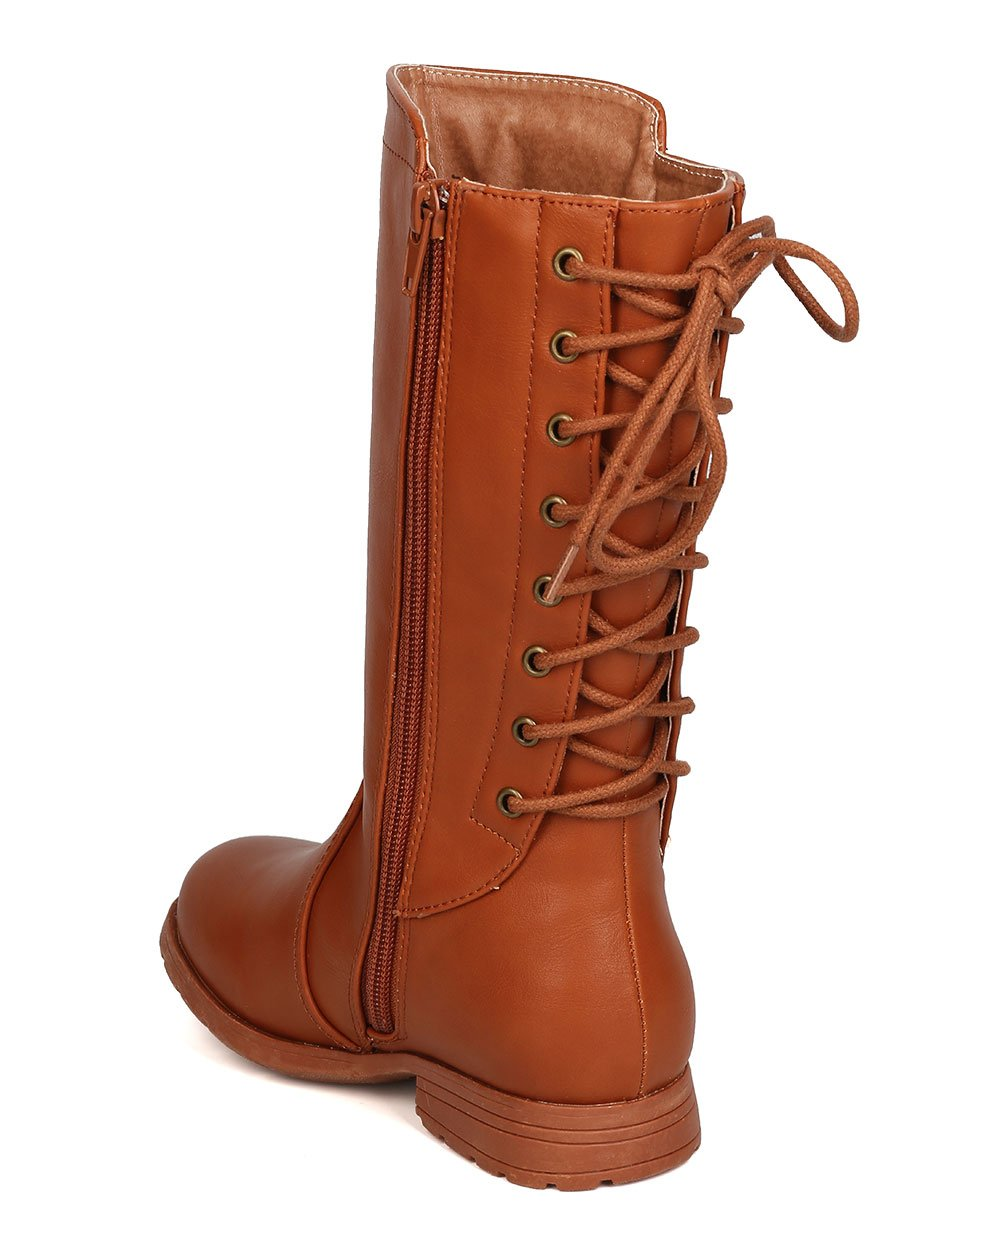 Girls Leatherette Back Lace Up Tall Riding Boot GB45 - Cognac (Size: Big Kid 3) by Little Angel (Image #3)